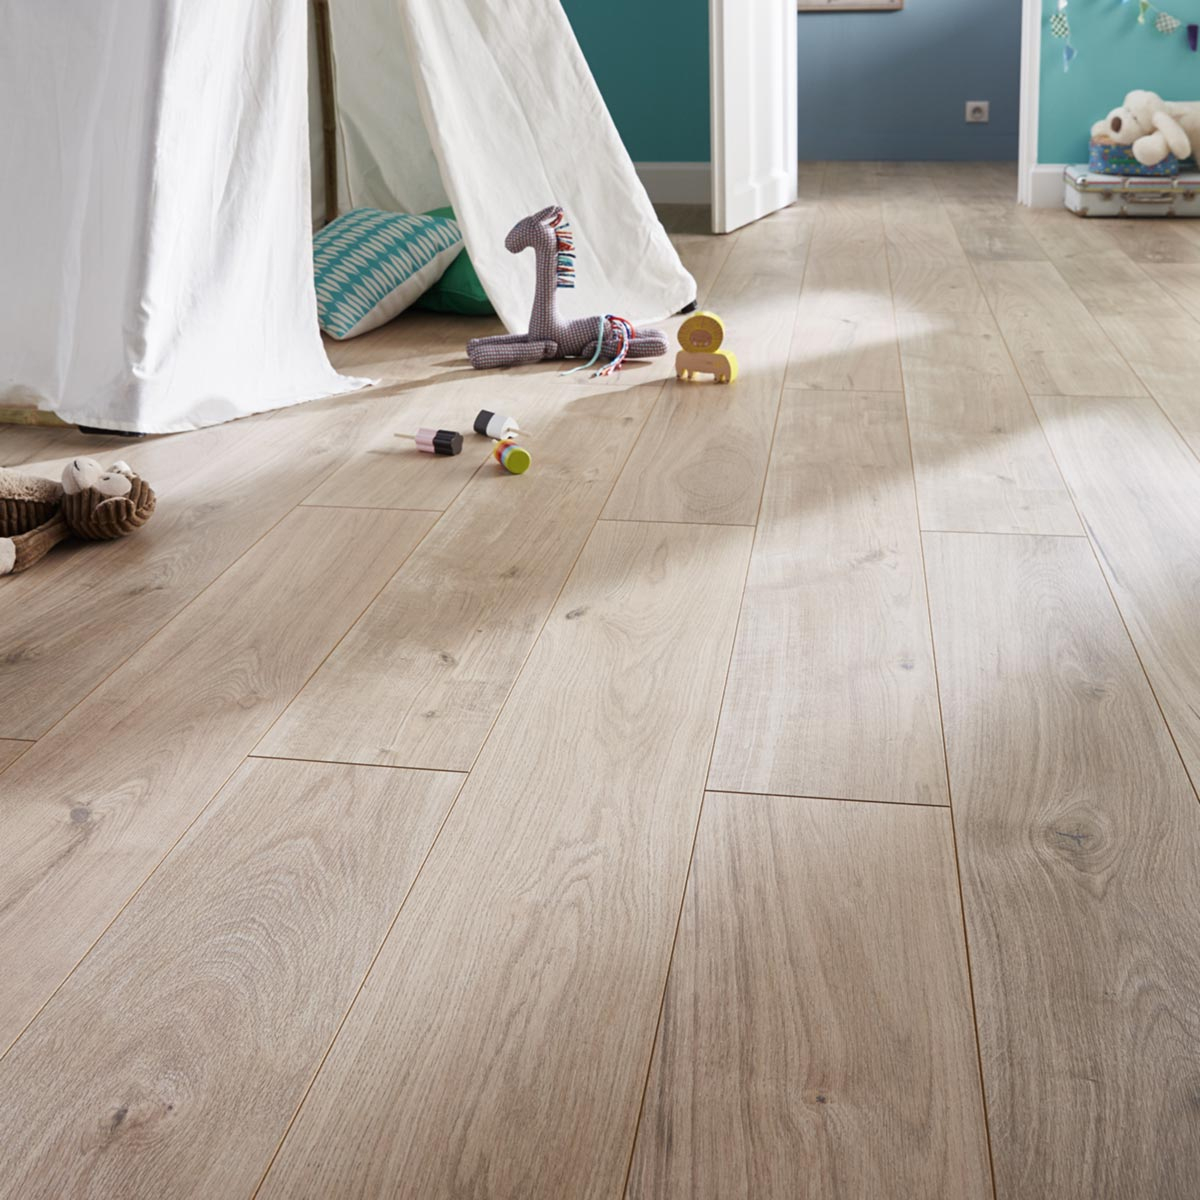 Sol Goodhome Serapportanta Parquet Brico Depot Idees Conception Jardin